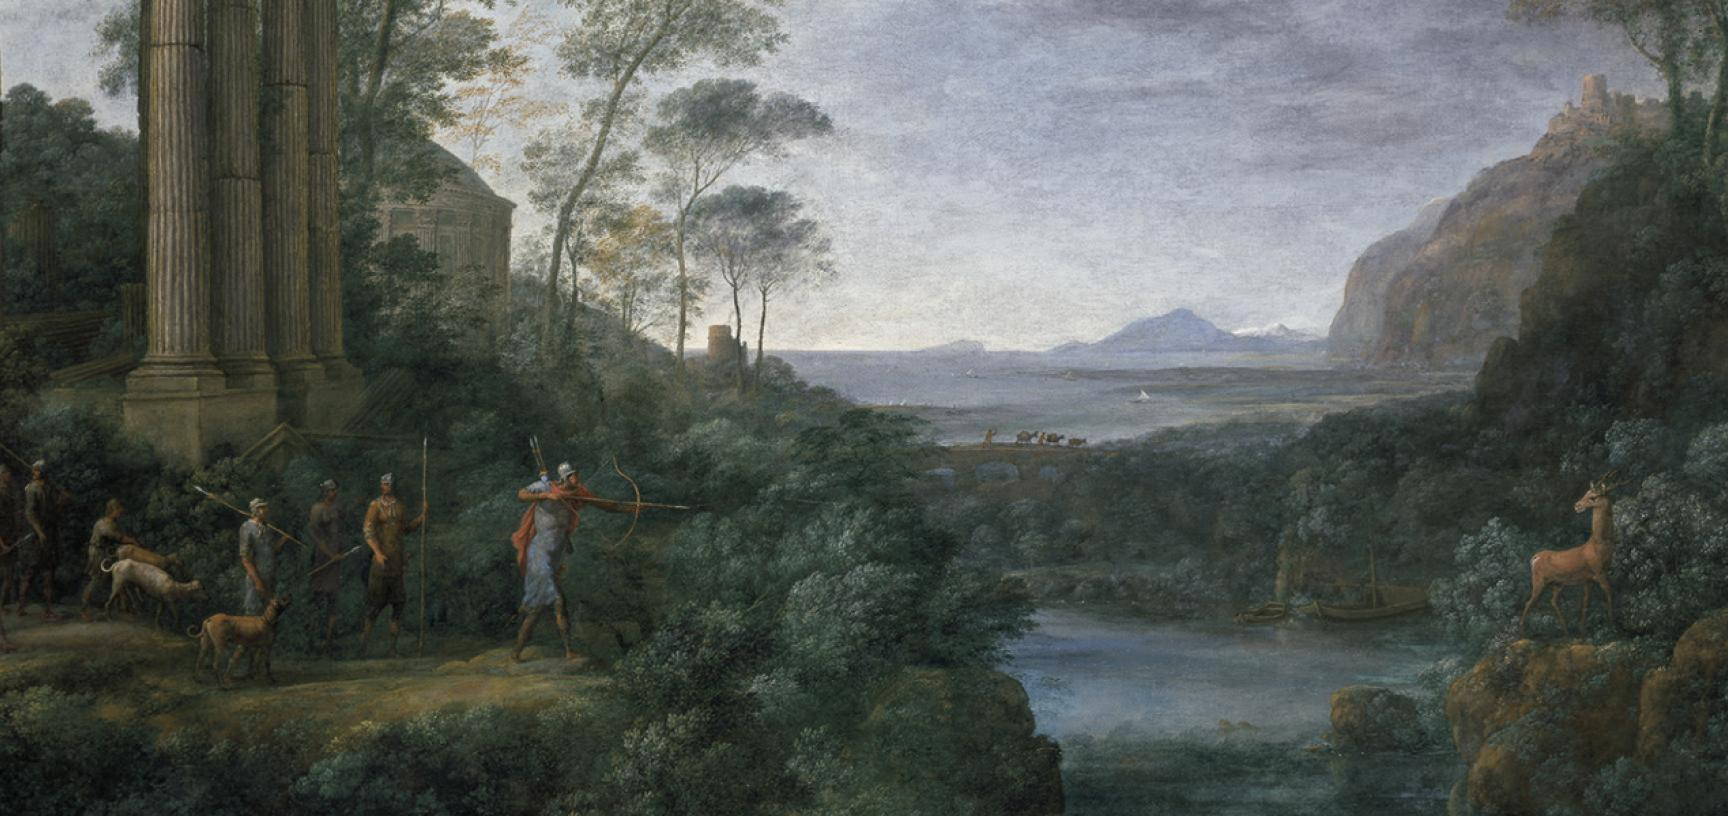 Landscape with Ascanius Shooting the Stag of Sylvia by Claude Lorrain (c.1604/5-1682) - The Baroque Art Gallery at the Ashmolean Museum